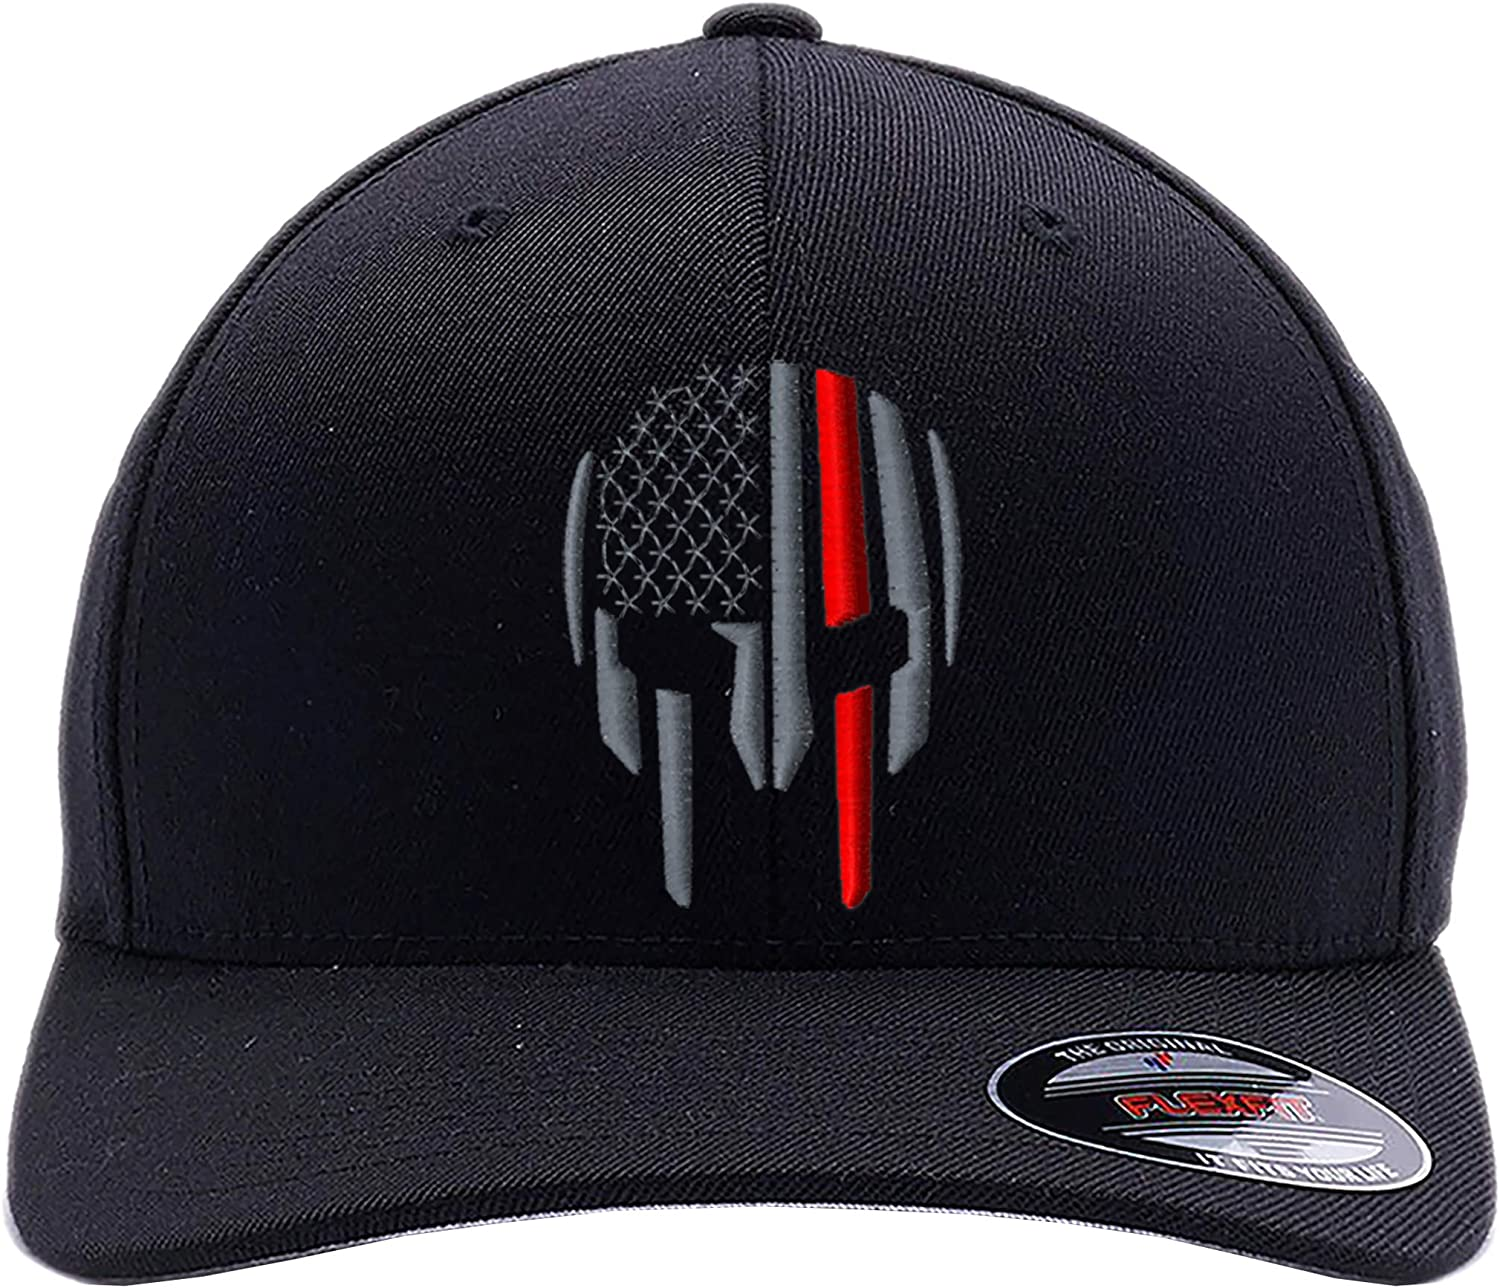 Thin RED LINE - Thin Blue LINE Spartan Helmet and Distressed Skull Flexfit Cap. Embroidered. 6277-6477 Flexfit